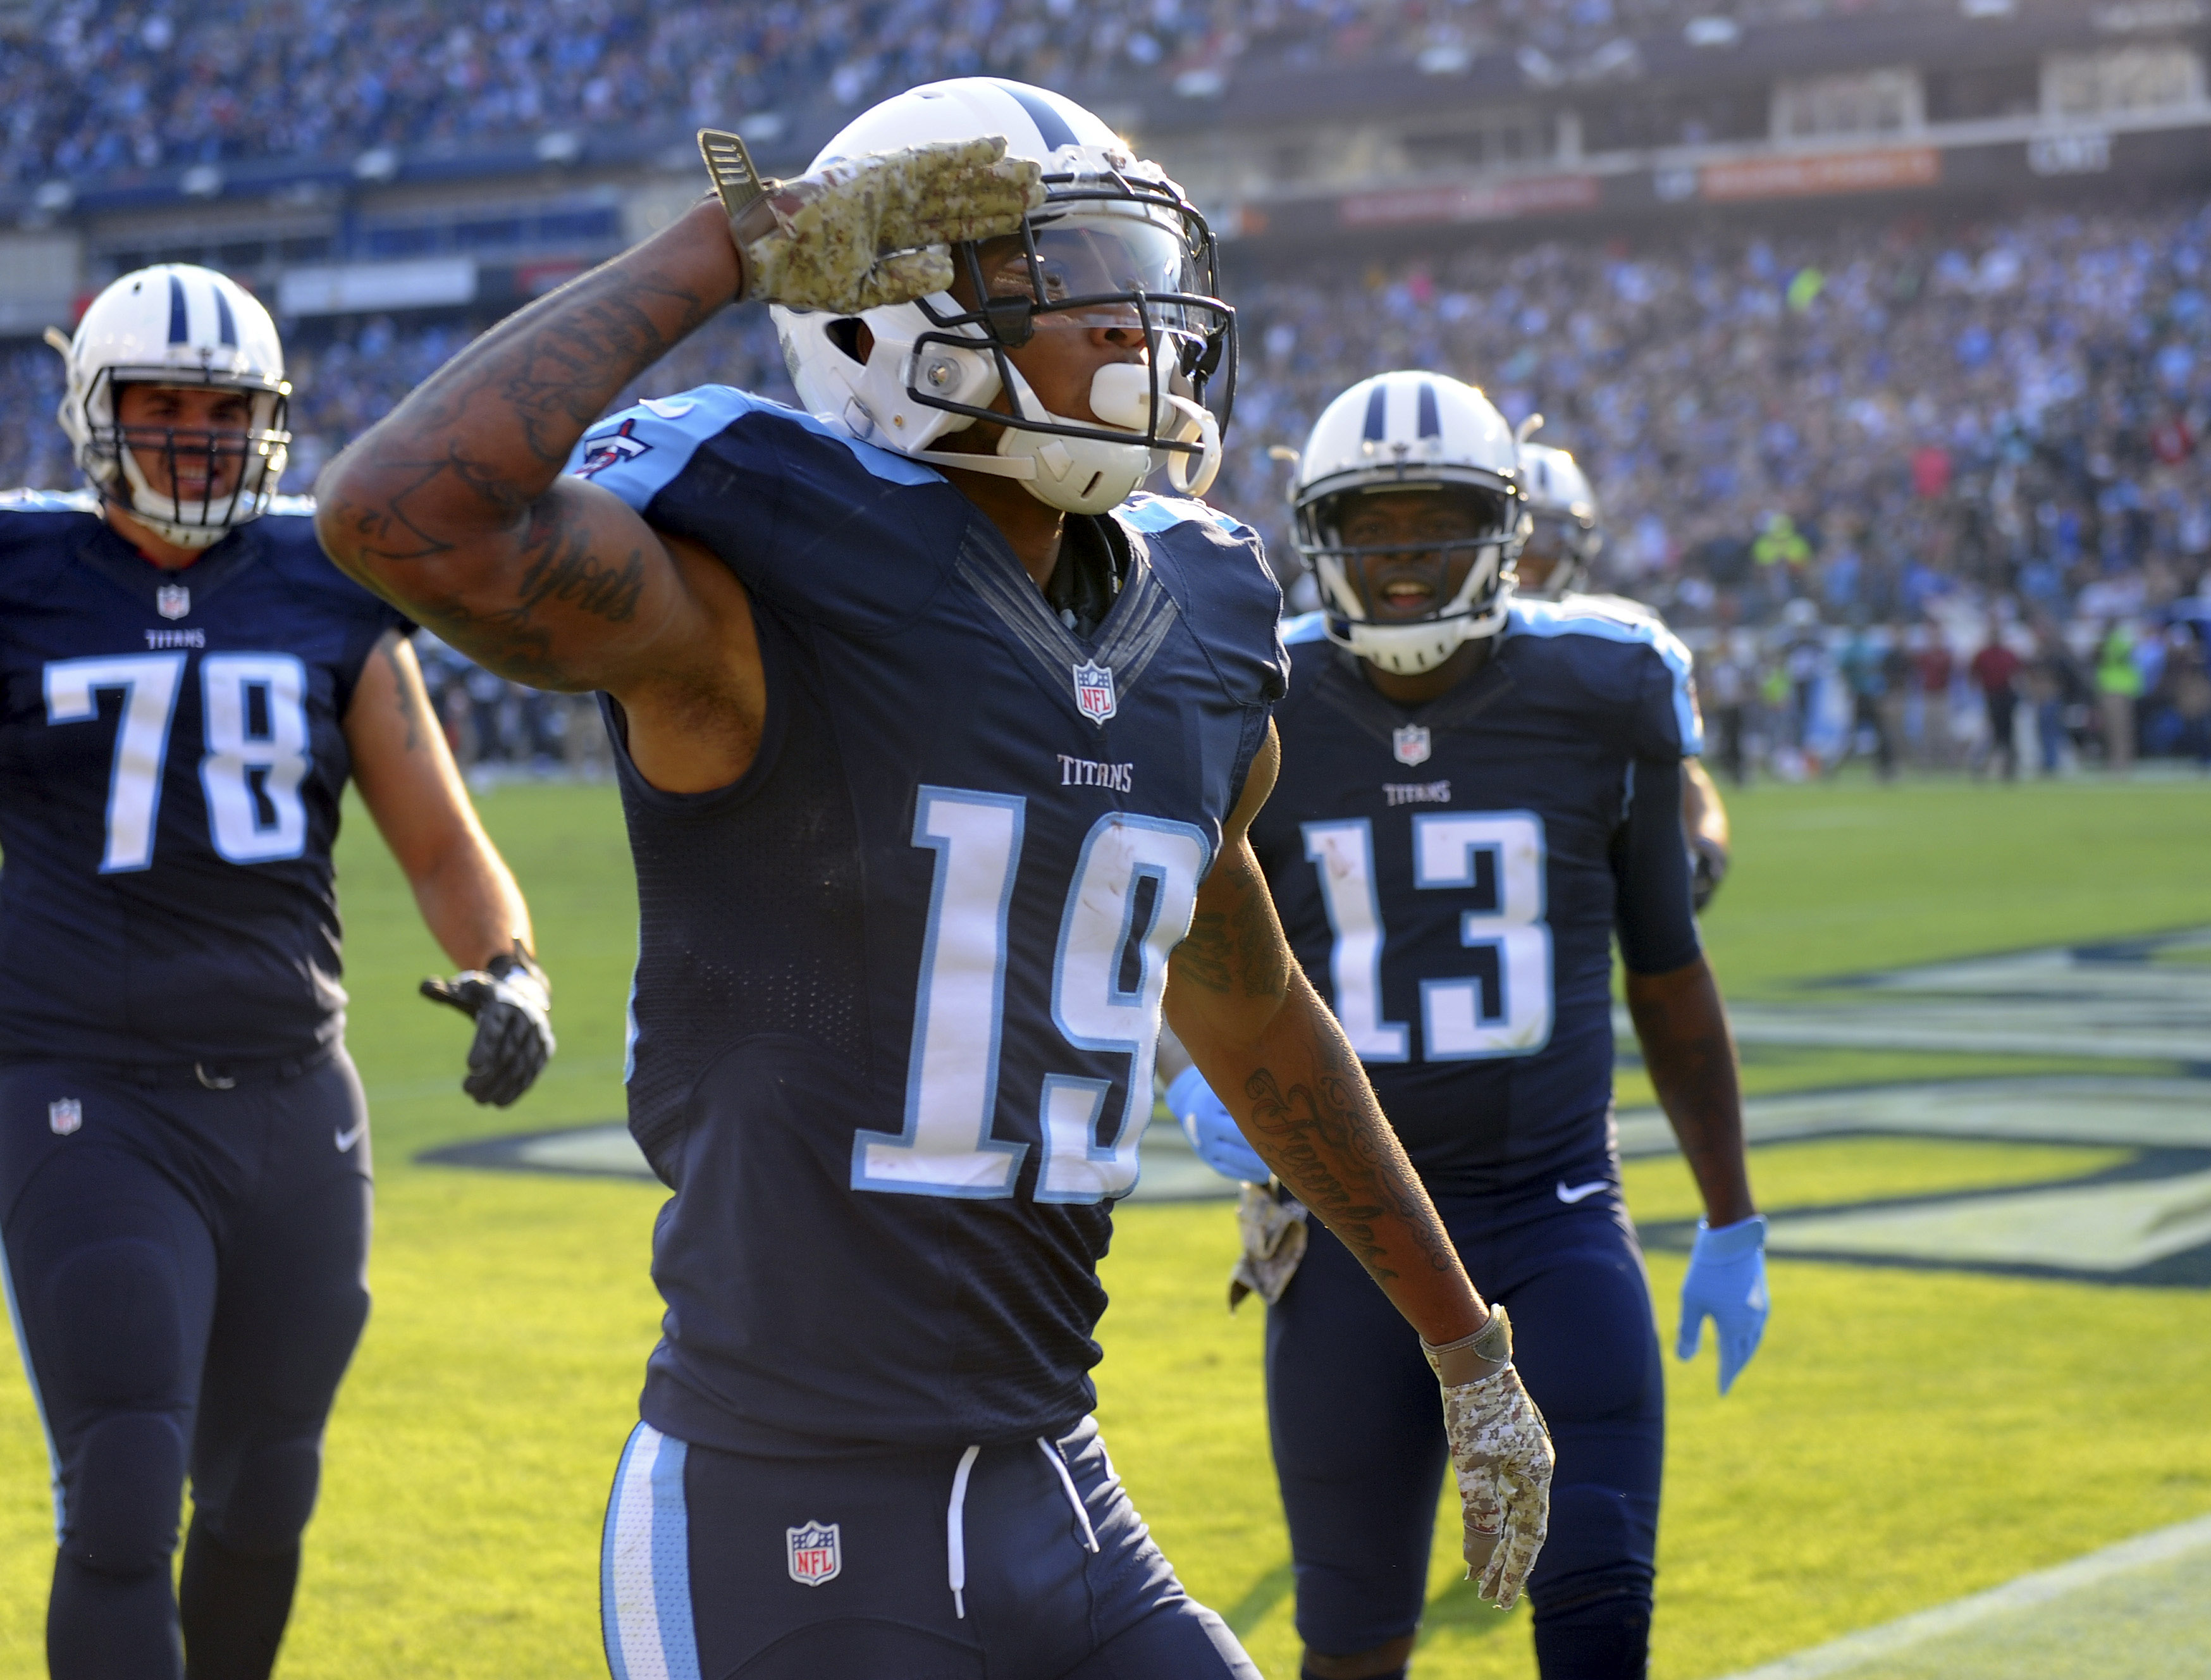 9674877-nfl-green-bay-packers-at-tennessee-titans